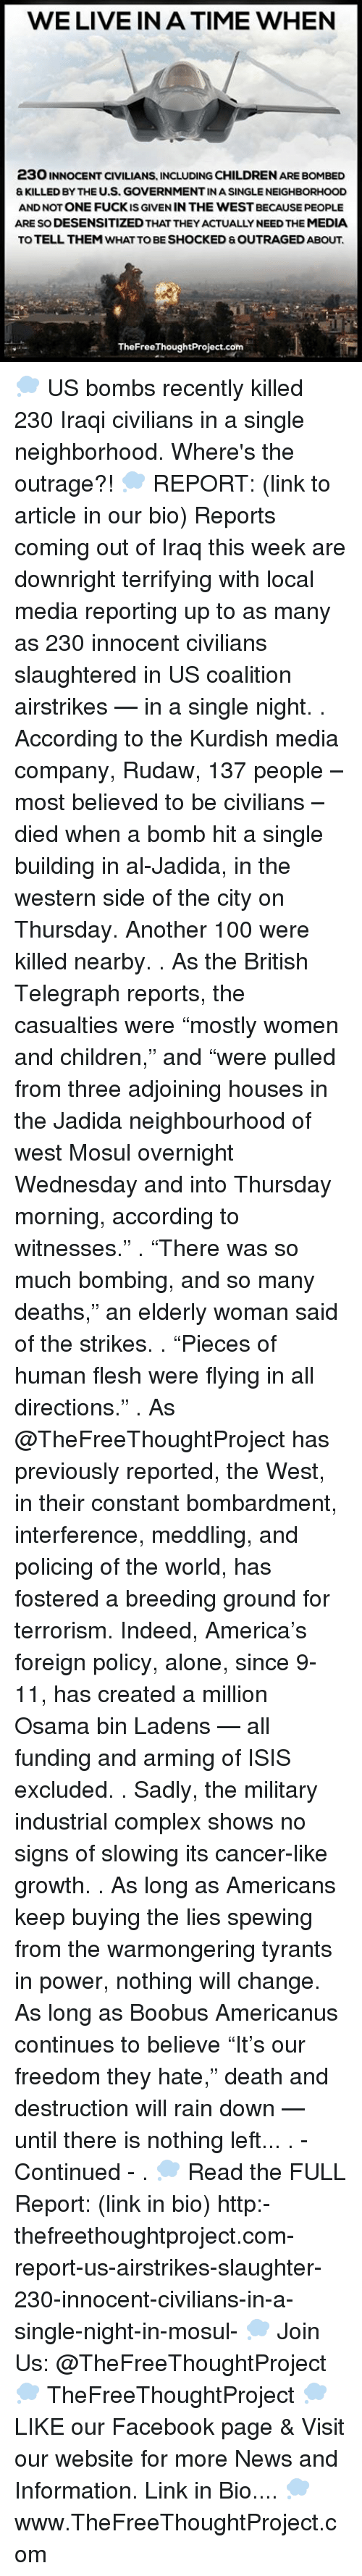 "Memes, Kurdish, and 🤖: WE LIVE IN A TIME WHEN  23O INNOCENT CIVILIANS, INCLUDING CHILDRENARE BONMBED  & KILLED BY THE U.S. GOVERNMENTINA SINGLE NEIGHBORHOOD  AND NOT ONE FUCKIS GIVEN IN THE WEST BECAUSE PEOPLE  ARE SODESENSITIZEDTHAT THEYACTUALLY NEED THE MEDIA  TOTELL THEM WHAT TO BE SHOCKED &OUTRAGED ABOUT.  TheFreeThoughtProject.com 💭 US bombs recently killed 230 Iraqi civilians in a single neighborhood. Where's the outrage?! 💭 REPORT: (link to article in our bio) Reports coming out of Iraq this week are downright terrifying with local media reporting up to as many as 230 innocent civilians slaughtered in US coalition airstrikes — in a single night. . According to the Kurdish media company, Rudaw, 137 people – most believed to be civilians – died when a bomb hit a single building in al-Jadida, in the western side of the city on Thursday. Another 100 were killed nearby. . As the British Telegraph reports, the casualties were ""mostly women and children,"" and ""were pulled from three adjoining houses in the Jadida neighbourhood of west Mosul overnight Wednesday and into Thursday morning, according to witnesses."" . ""There was so much bombing, and so many deaths,"" an elderly woman said of the strikes. . ""Pieces of human flesh were flying in all directions."" . As @TheFreeThoughtProject has previously reported, the West, in their constant bombardment, interference, meddling, and policing of the world, has fostered a breeding ground for terrorism. Indeed, America's foreign policy, alone, since 9-11, has created a million Osama bin Ladens — all funding and arming of ISIS excluded. . Sadly, the military industrial complex shows no signs of slowing its cancer-like growth. . As long as Americans keep buying the lies spewing from the warmongering tyrants in power, nothing will change. As long as Boobus Americanus continues to believe ""It's our freedom they hate,"" death and destruction will rain down — until there is nothing left... . - Continued - . 💭 Read the FULL Report: (link in bio) http:-thefreethoughtproject.com-report-us-airstrikes-slaughter-230-innocent-civilians-in-a-single-night-in-mosul- 💭 Join Us: @TheFreeThoughtProject 💭 TheFreeThoughtProject 💭 LIKE our Facebook page & Visit our website for more News and Information. Link in Bio.... 💭 www.TheFreeThoughtProject.com"